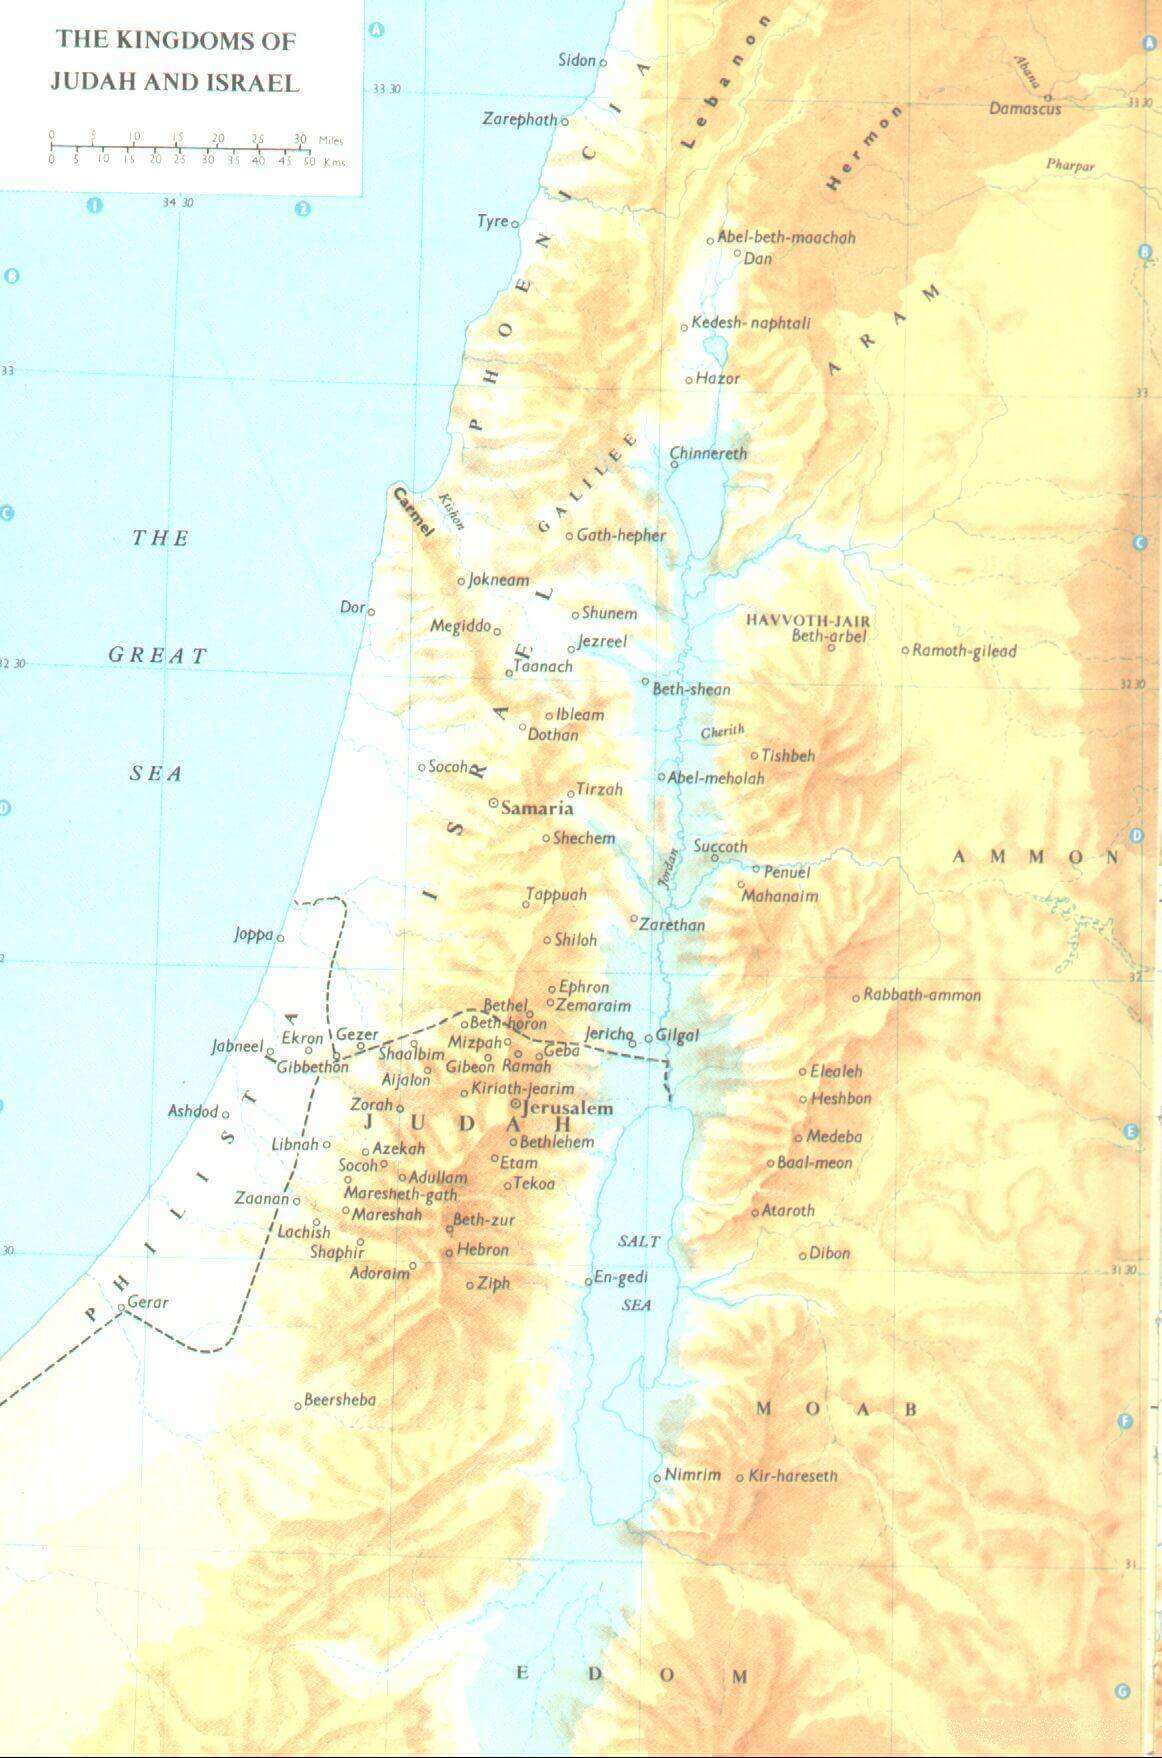 Bible Maps & Times with 24 photos on bible maps old testament, map of israel biblical old testament, map of israel during time of the kings, map israel king david time, map of israel divided kingdoms israel judah, map of ancient israel old testament, map of israel and suez canal,